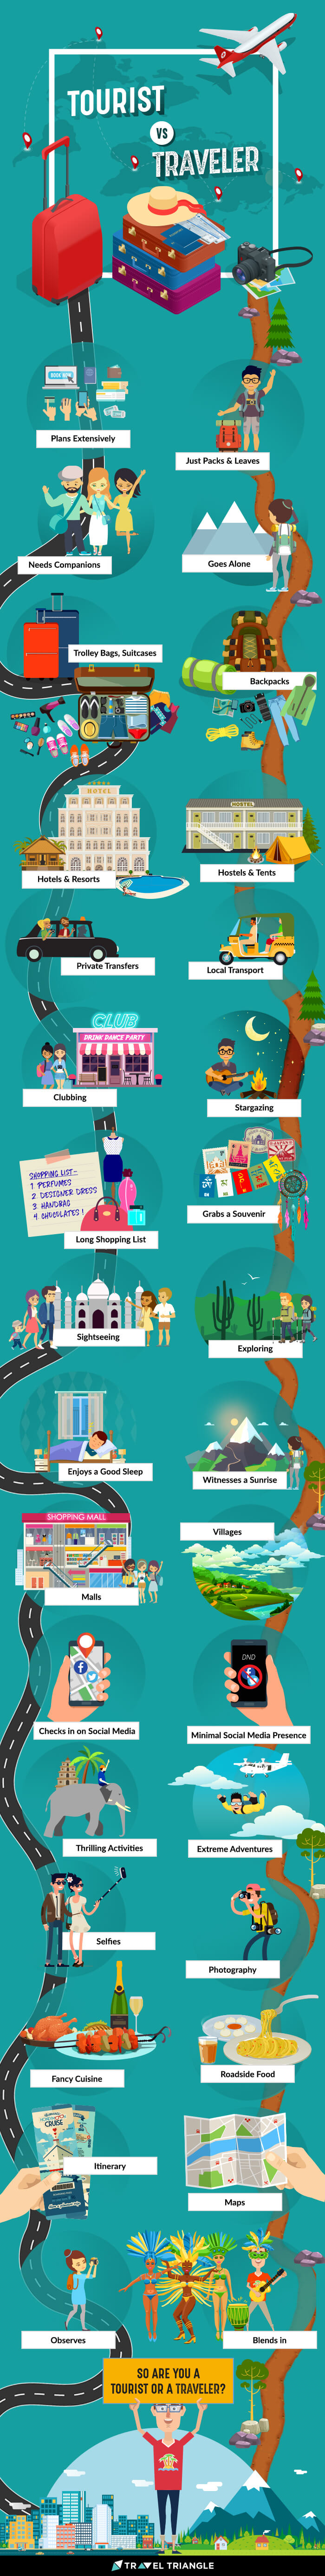 tourist vs traveler infographic: which one defines your personality?